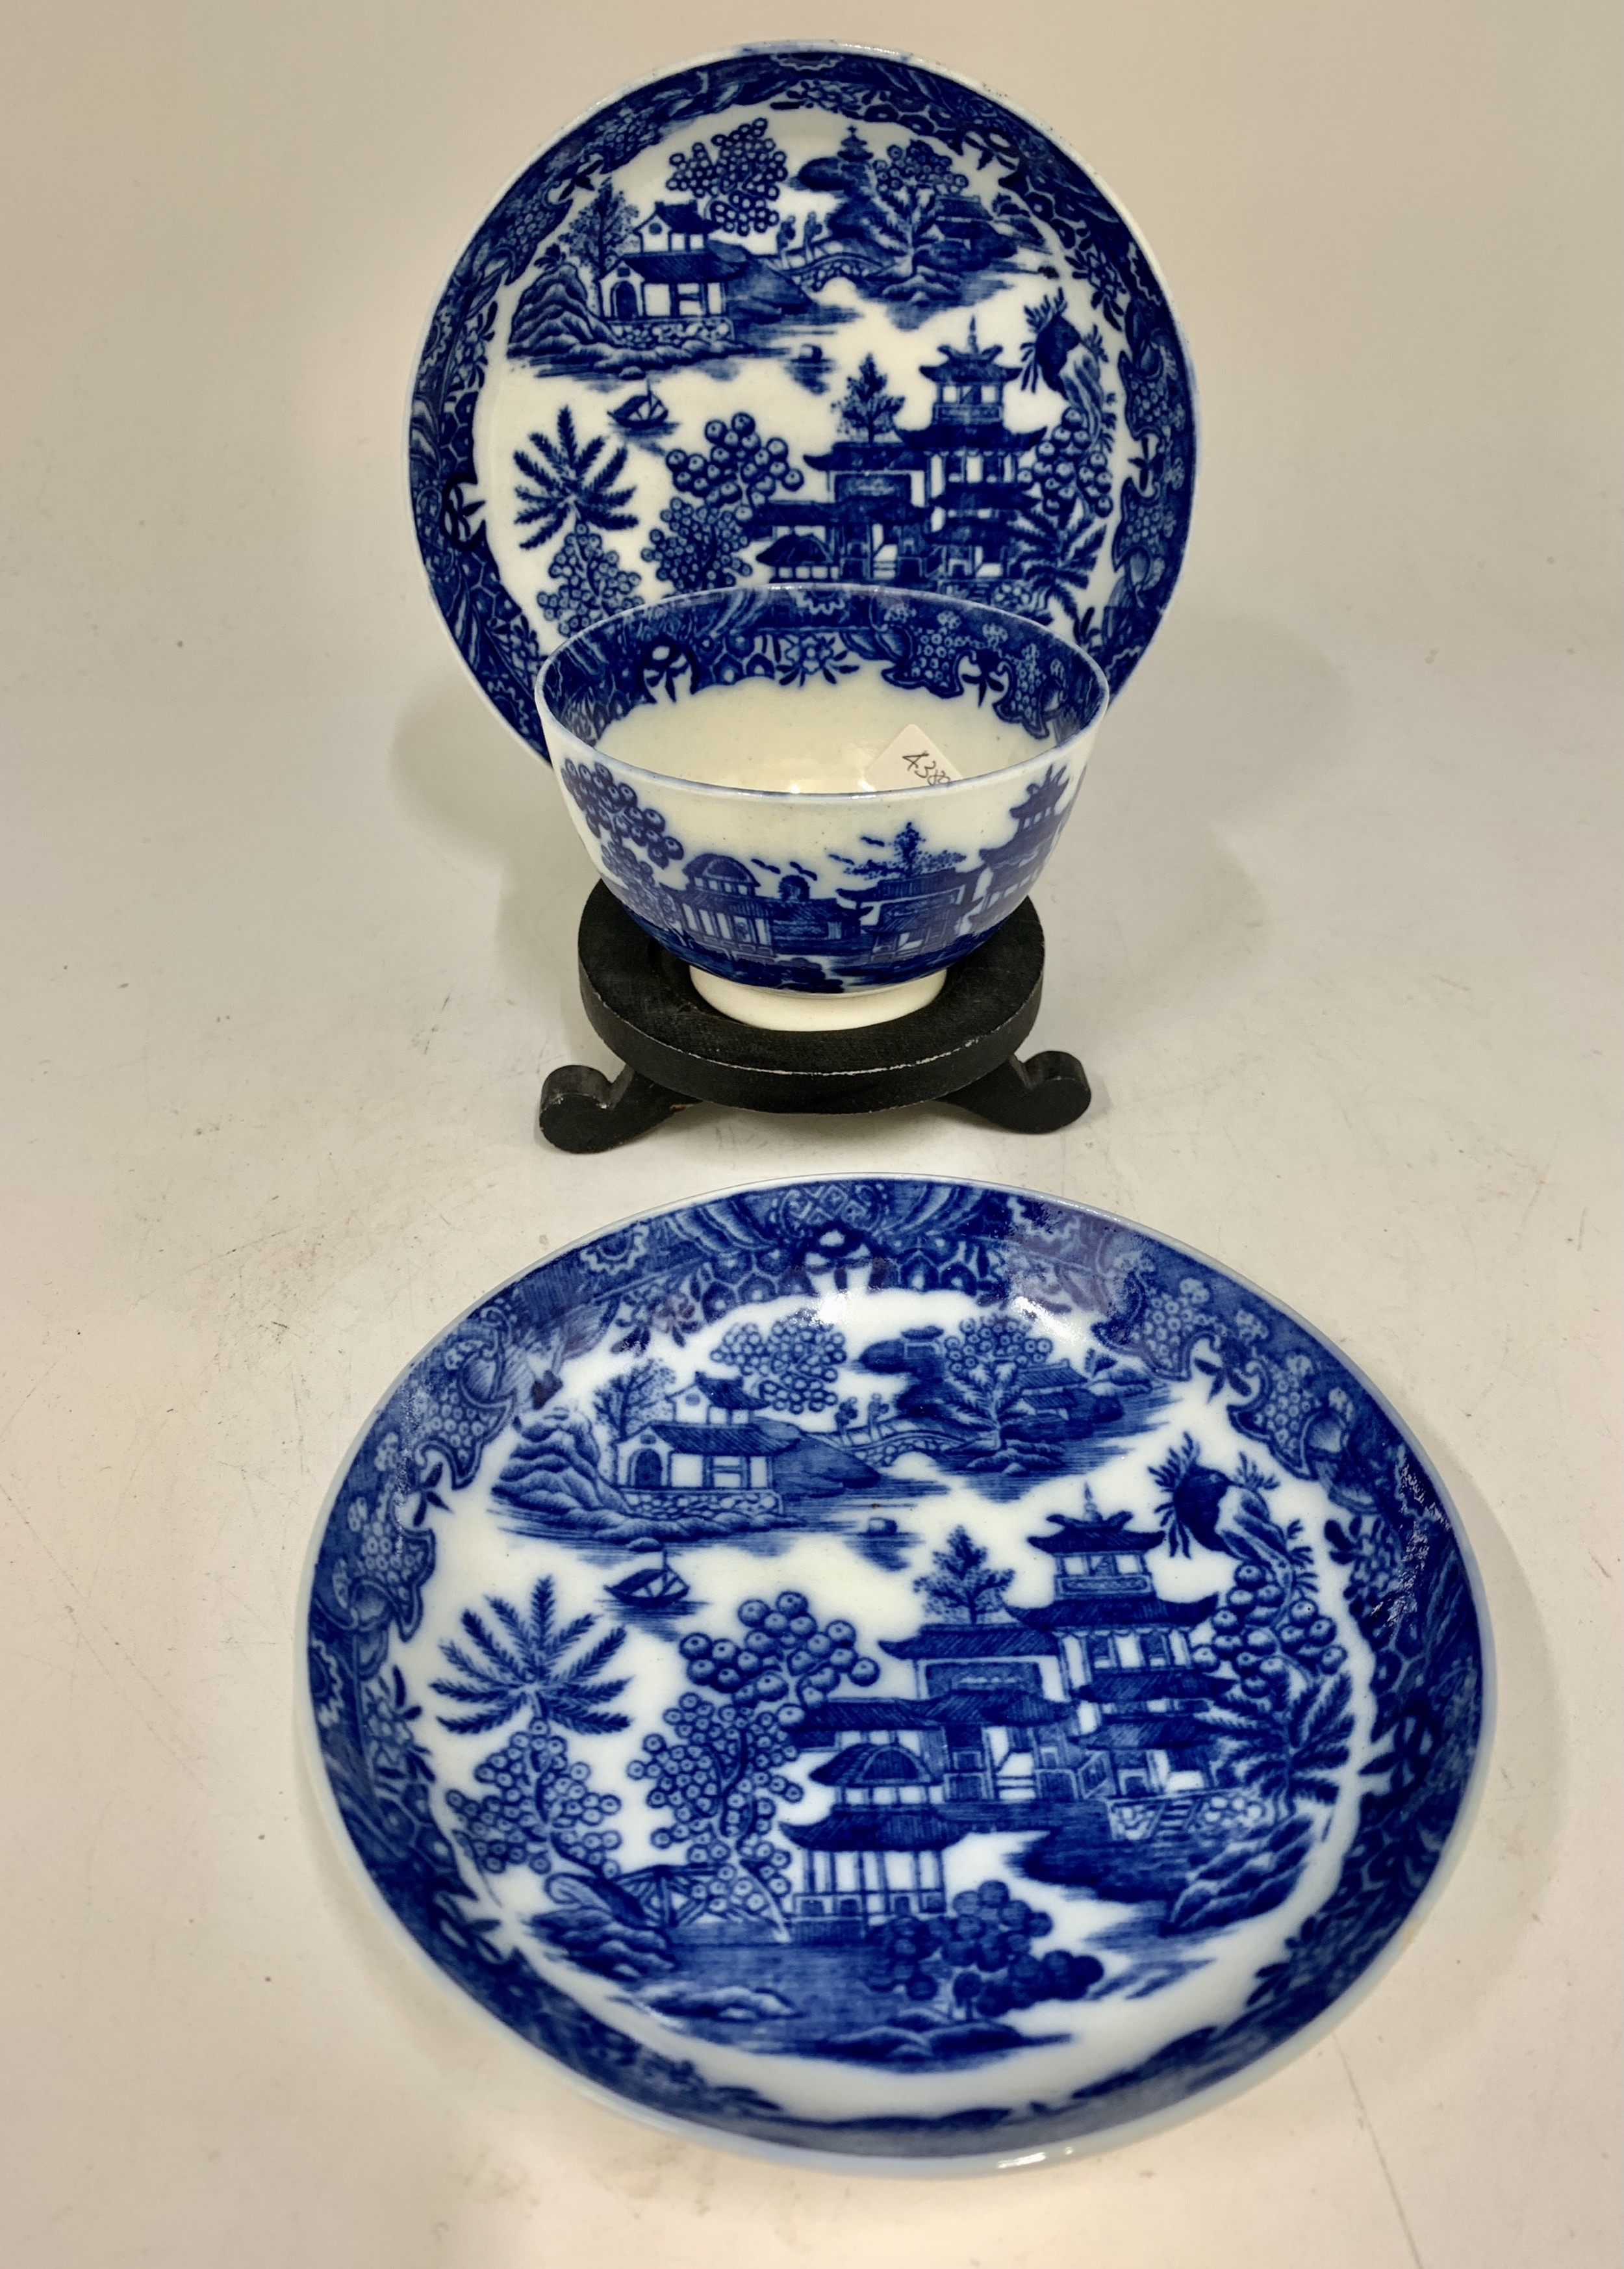 18 th century blue white pottery tea bowl and two saucers circa 1795